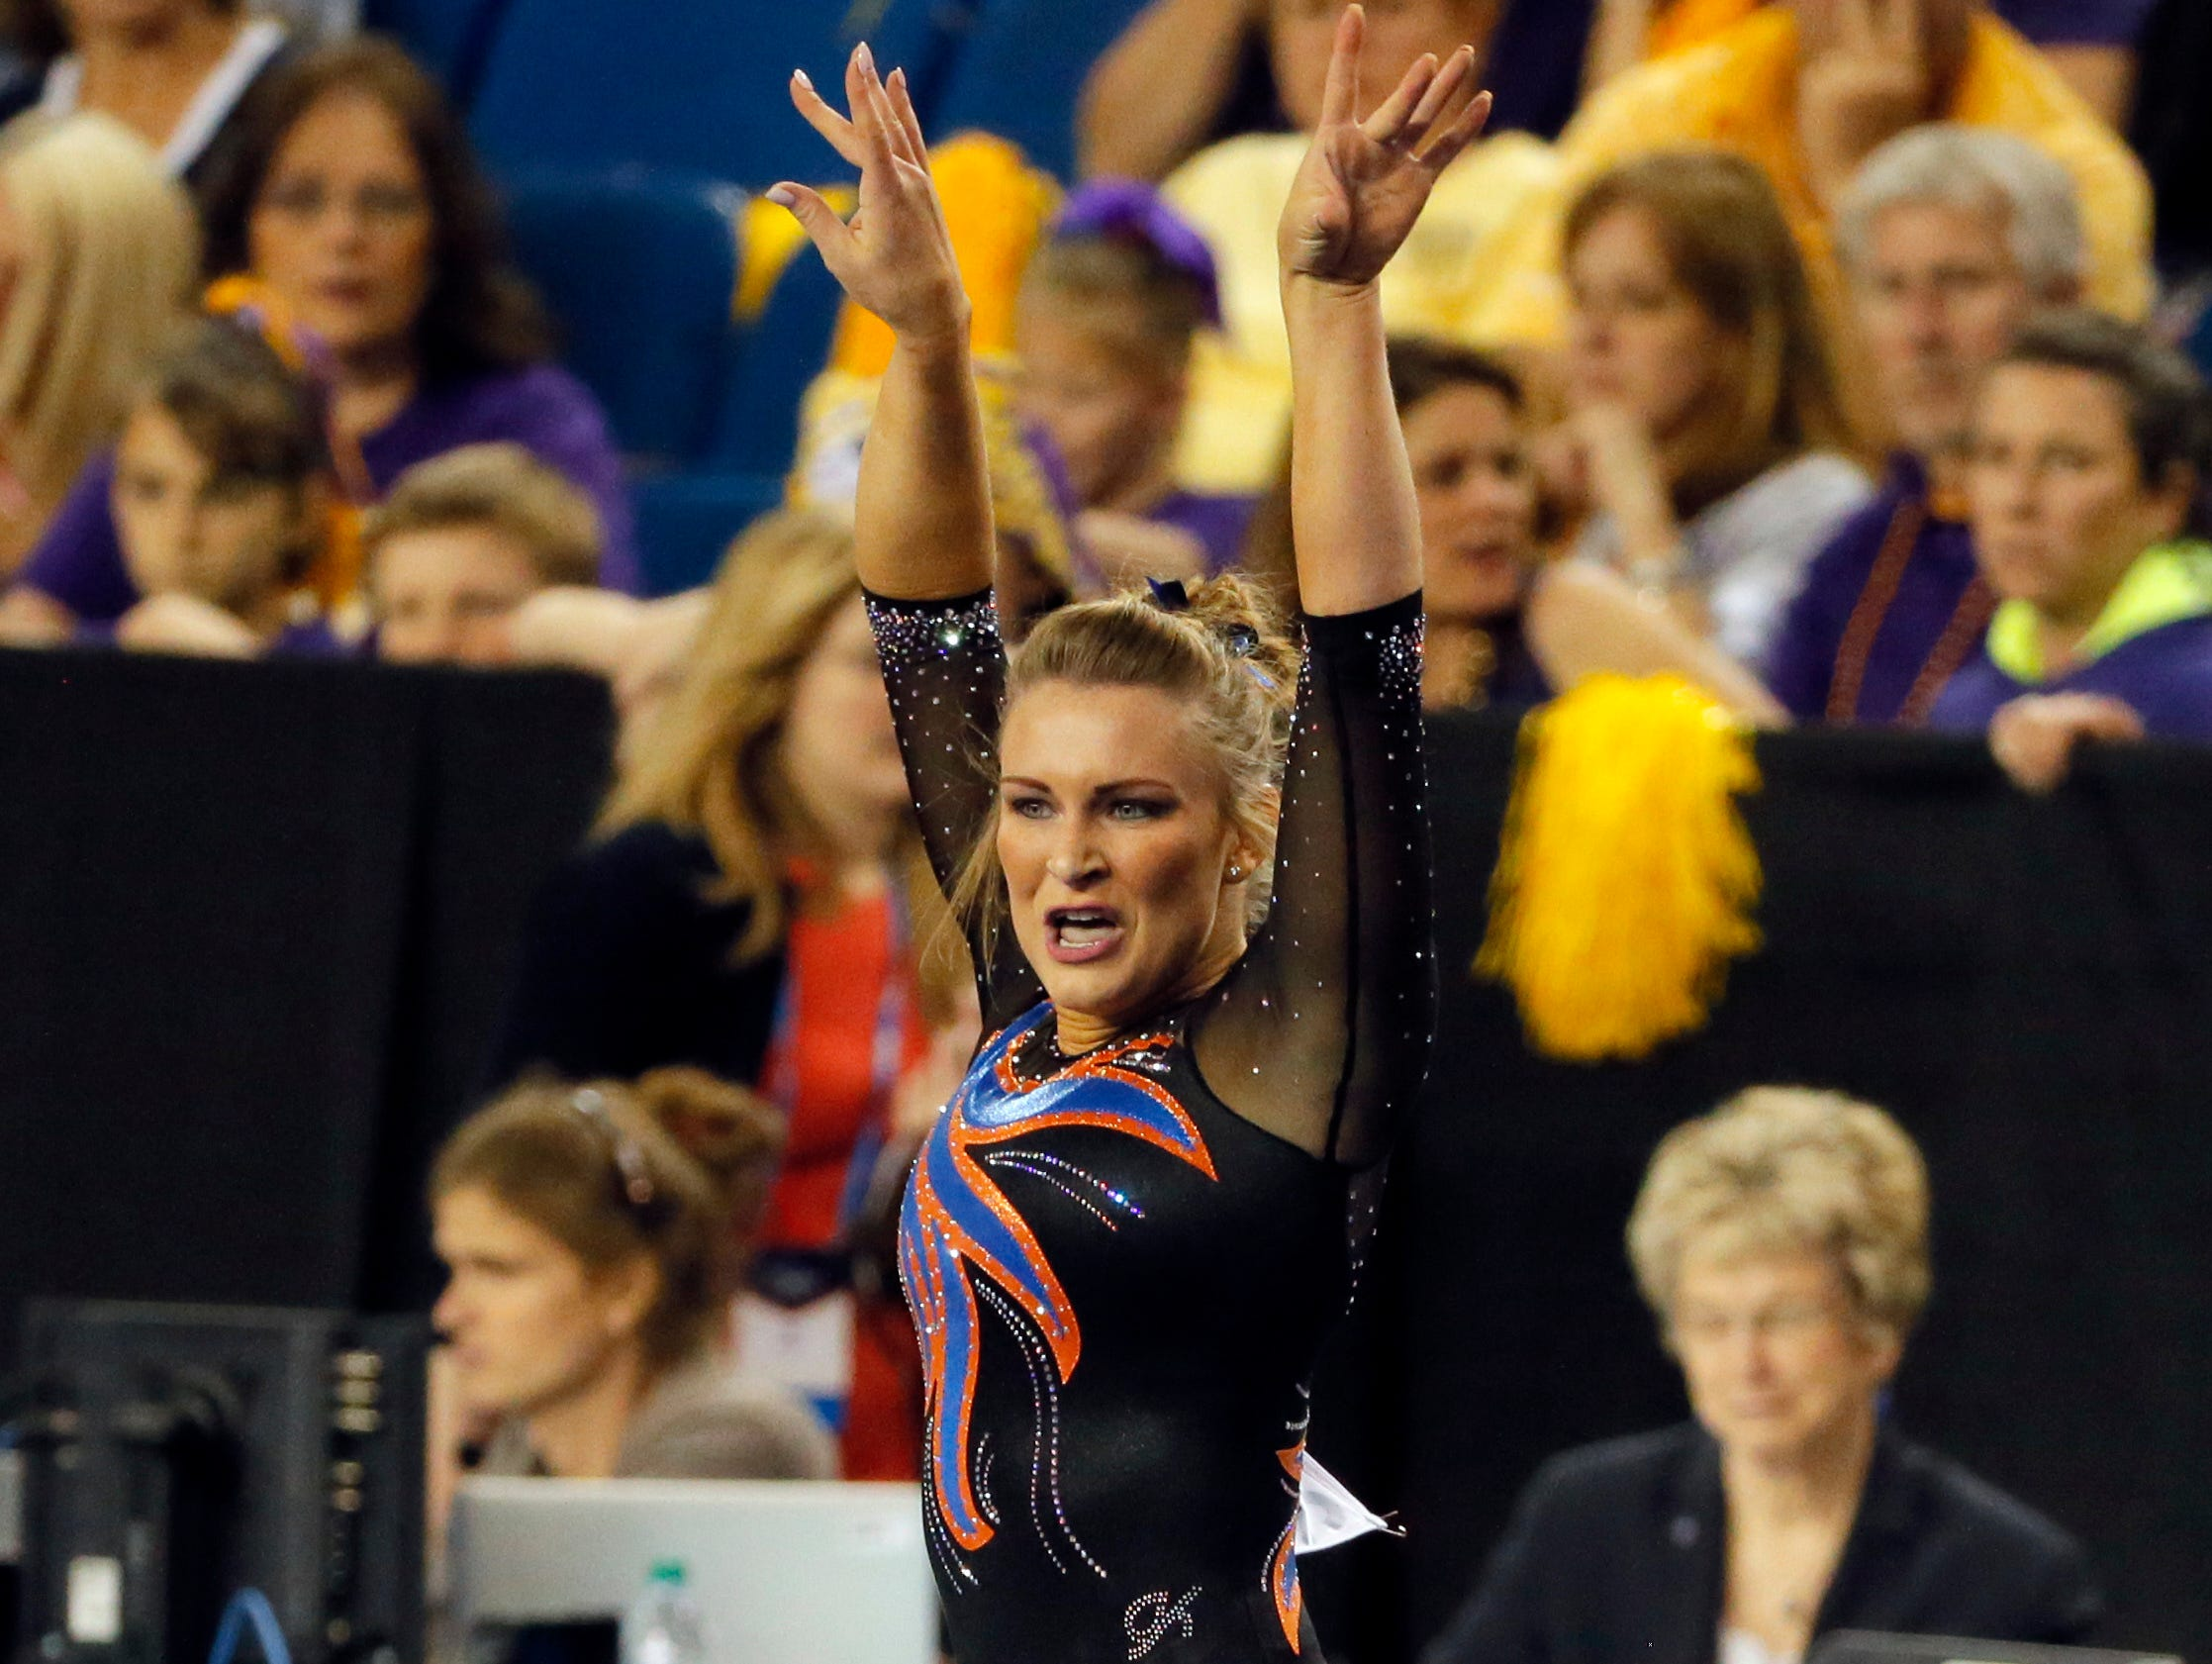 Bridget Sloan competes in the floor exercise during the NCAA women's gymnastics championships, Friday, April 15, 2016, in Fort Worth, Texas.